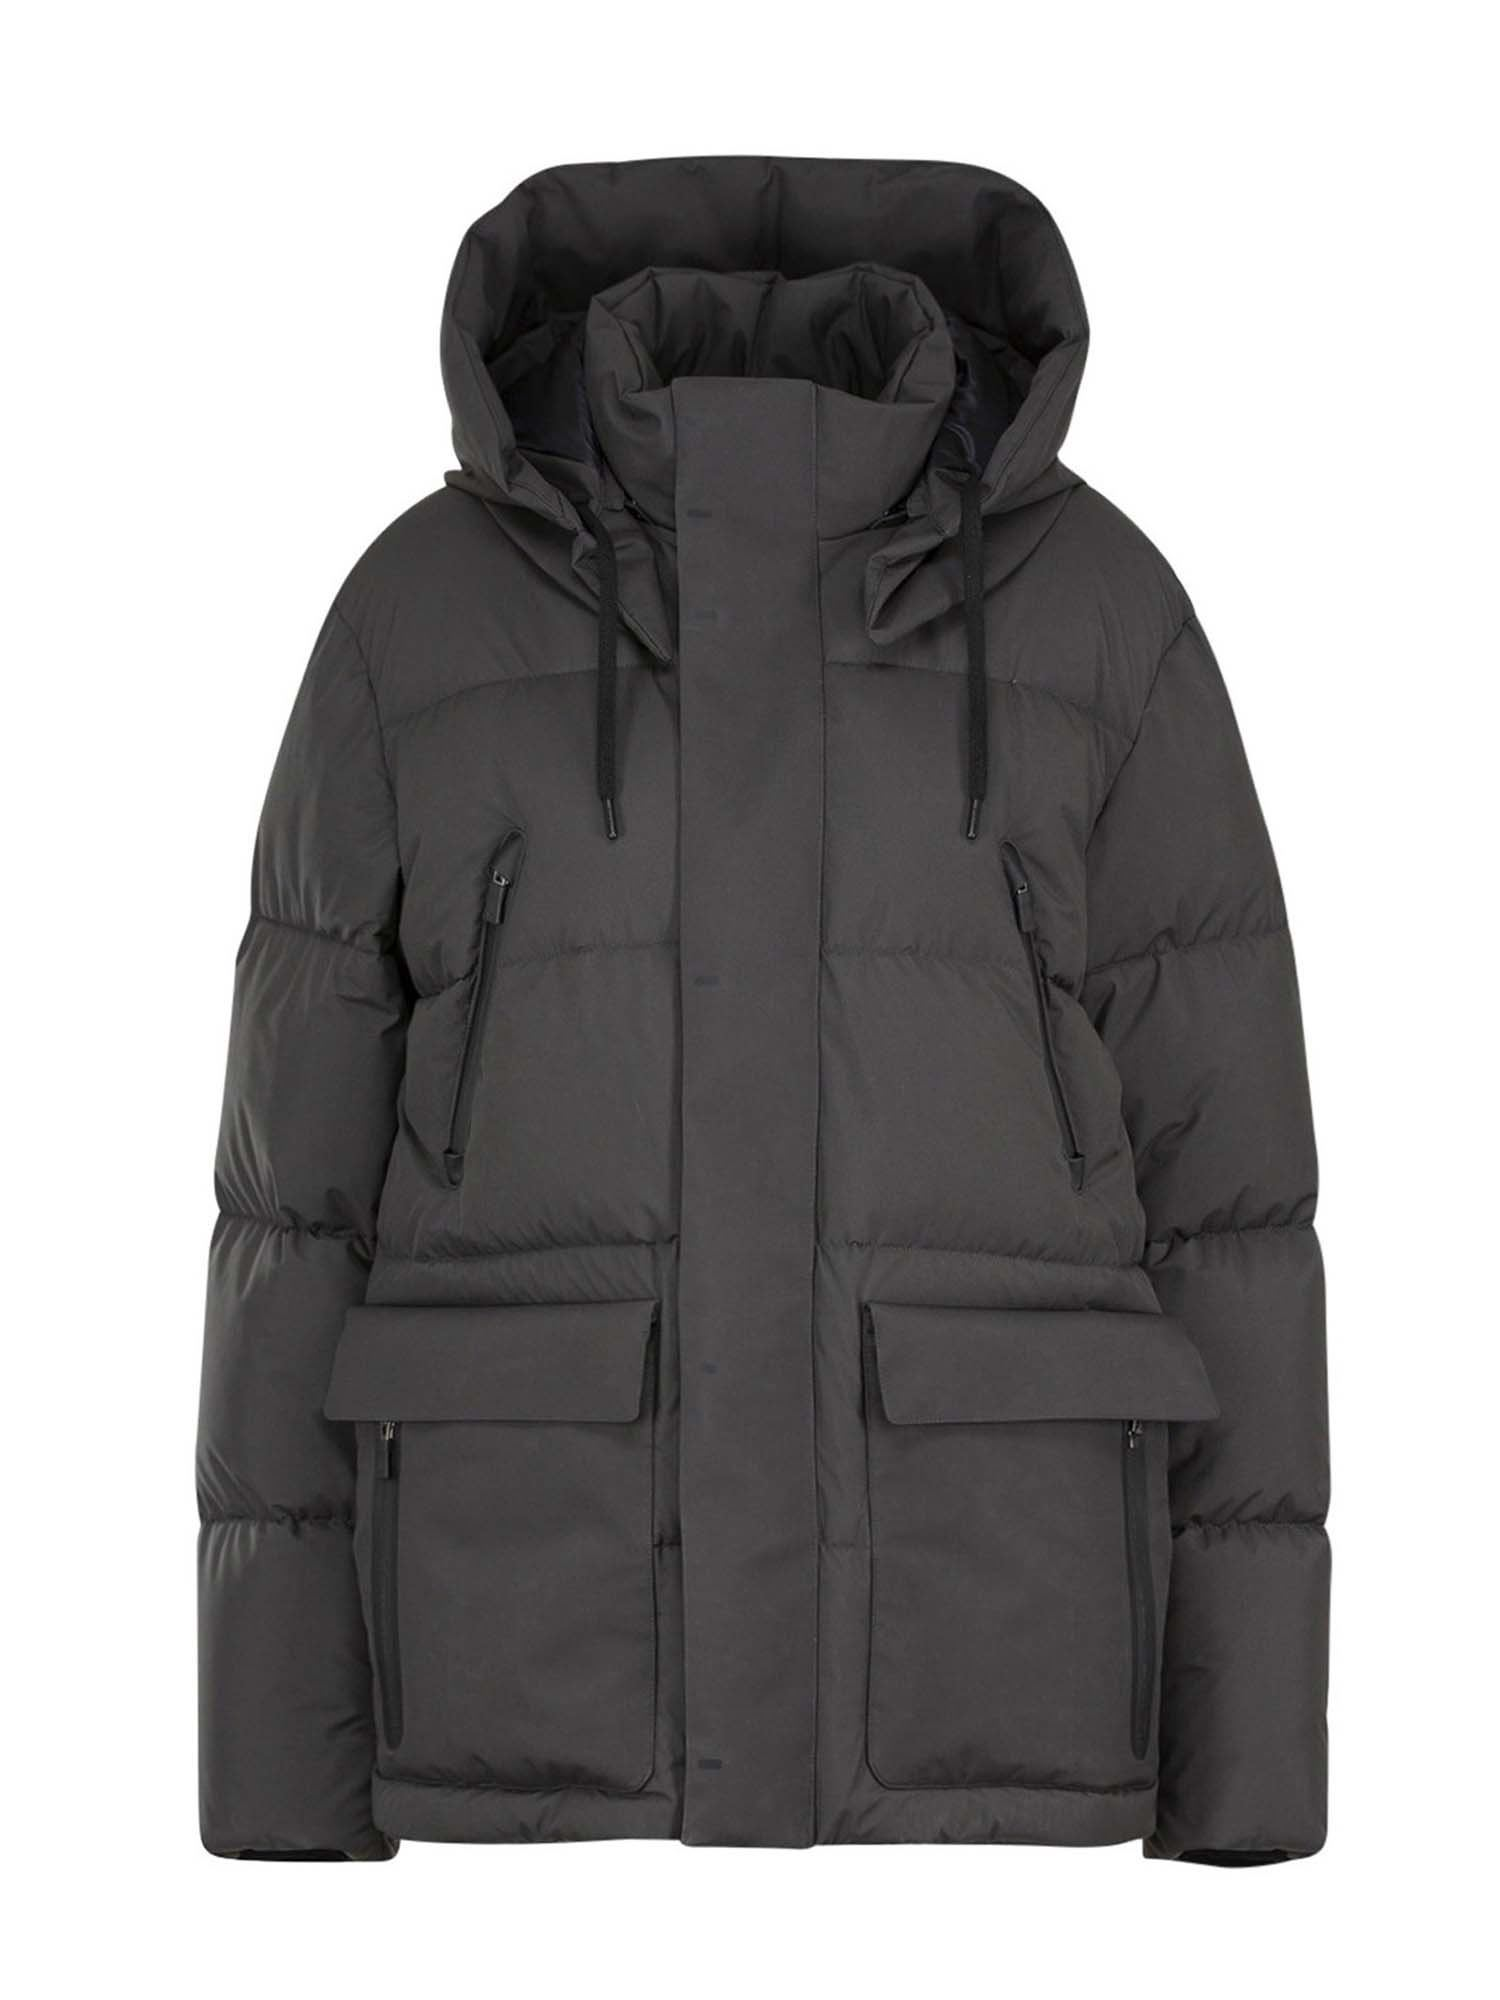 Herno HOODED DOWN JACKET IN GREY